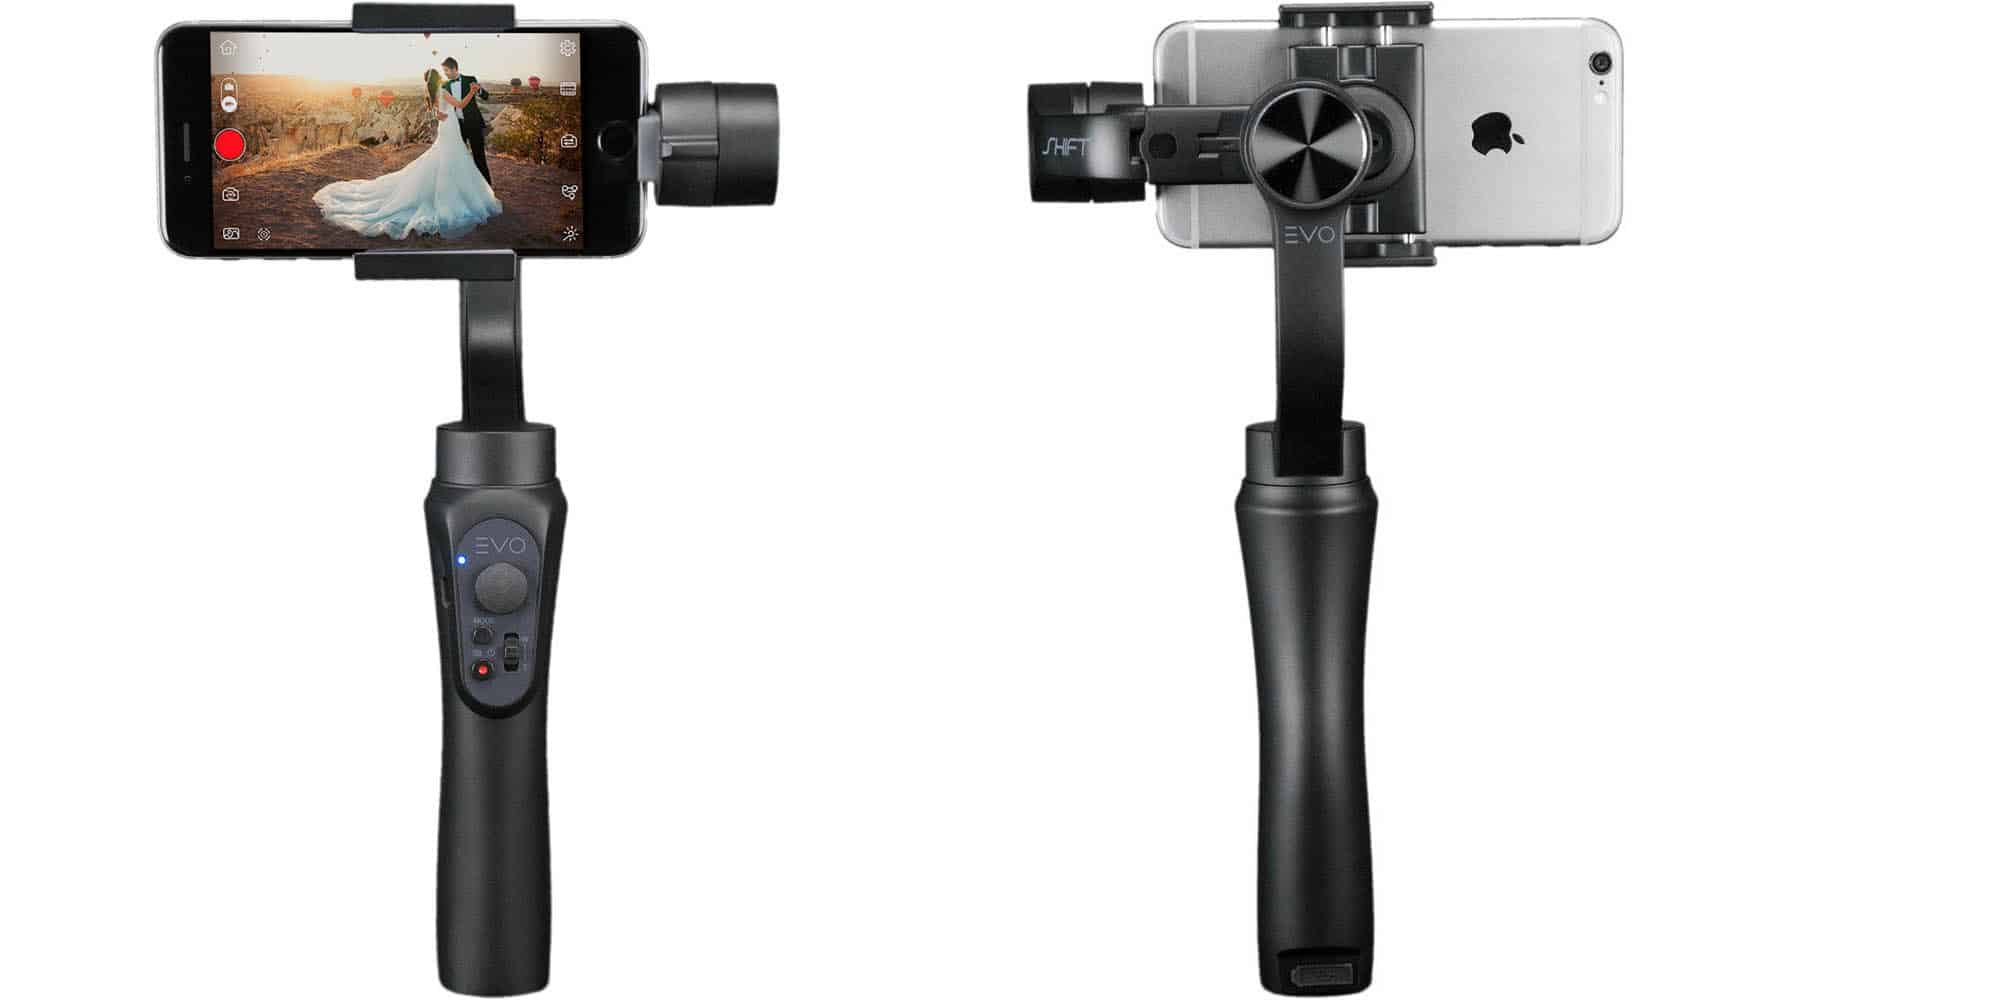 evo shift gimbal review featured image